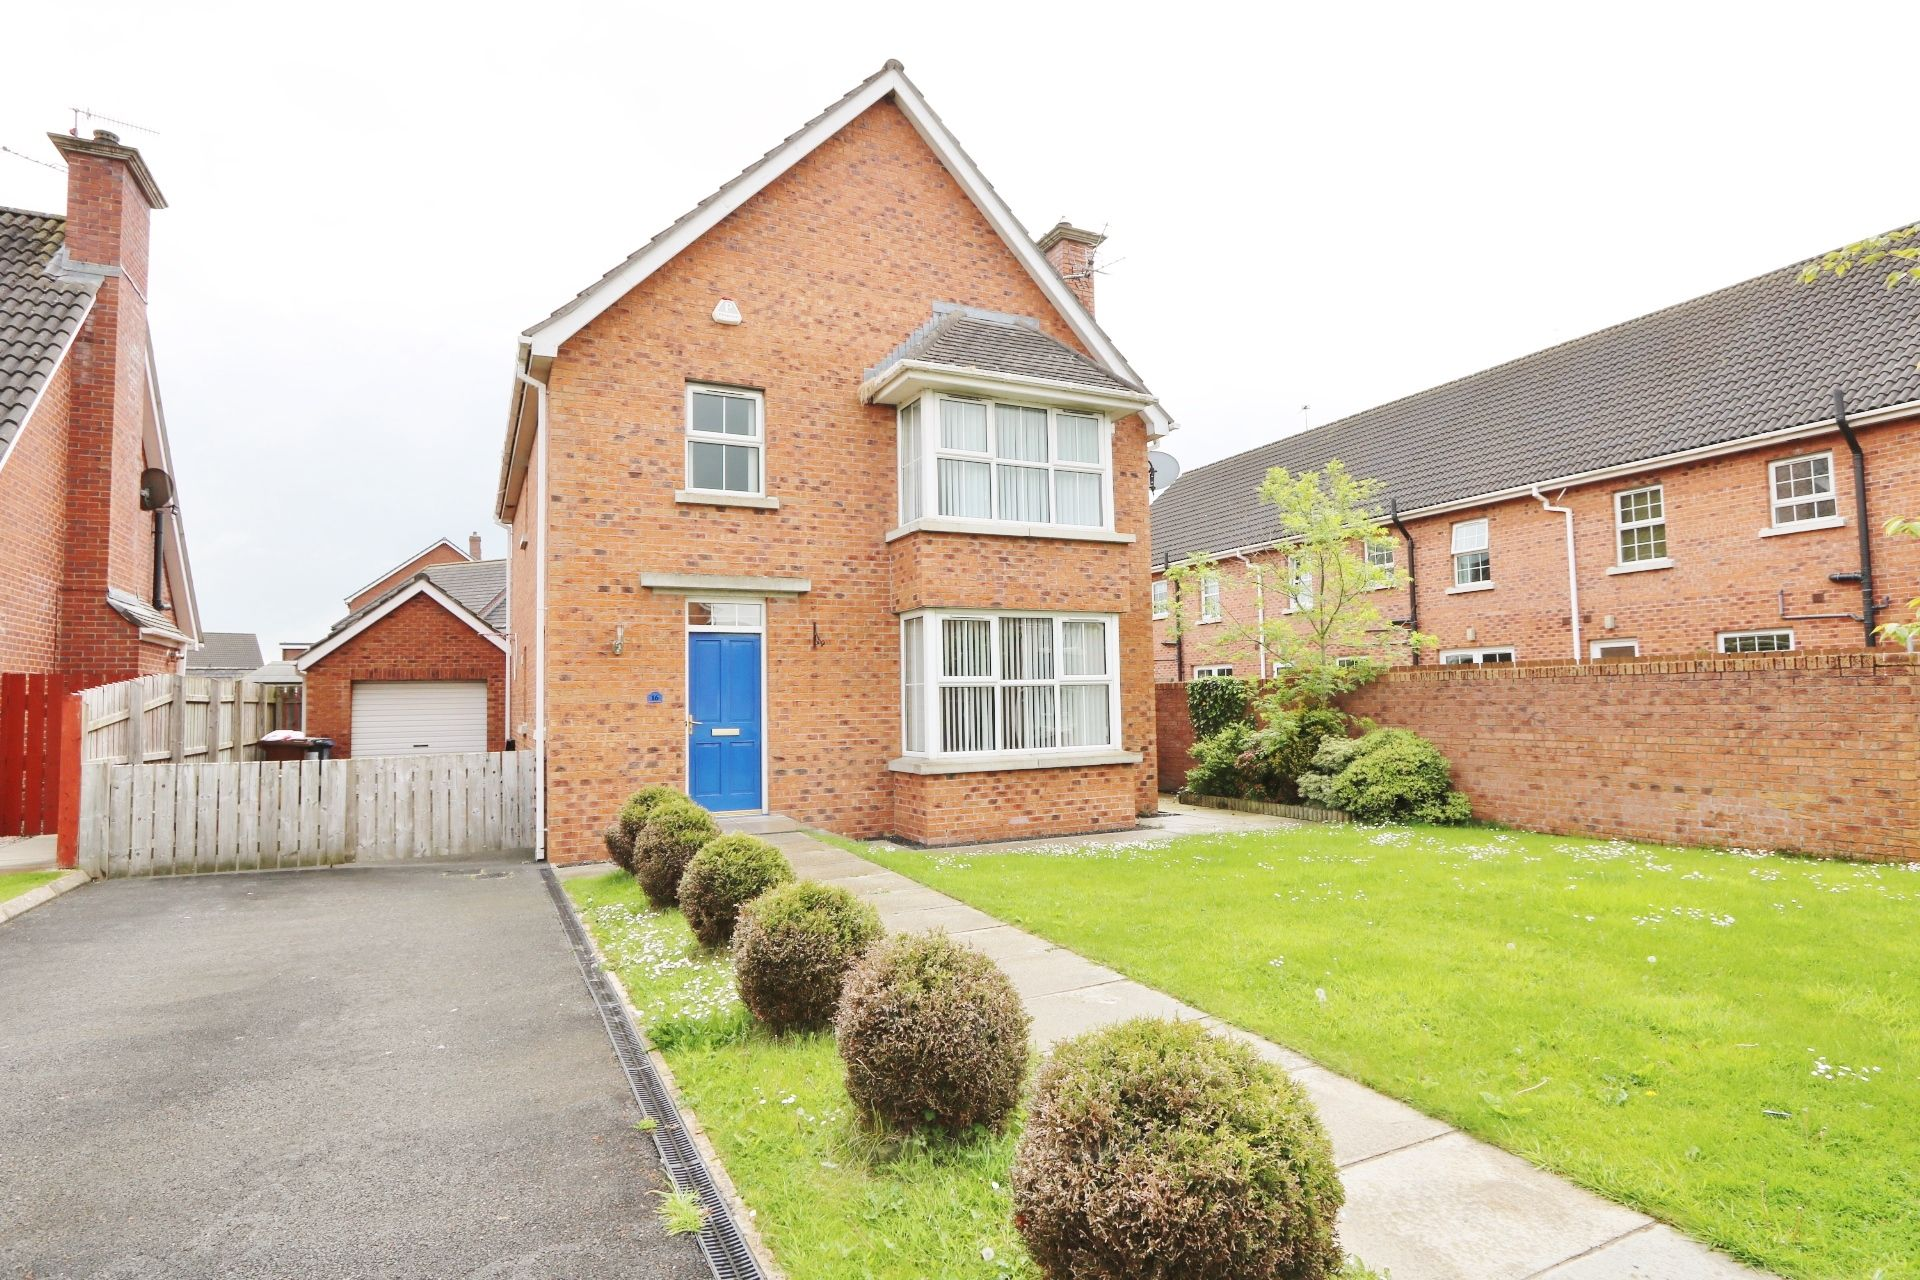 4 bedroom detached house For Sale in Antrim - Property photograph